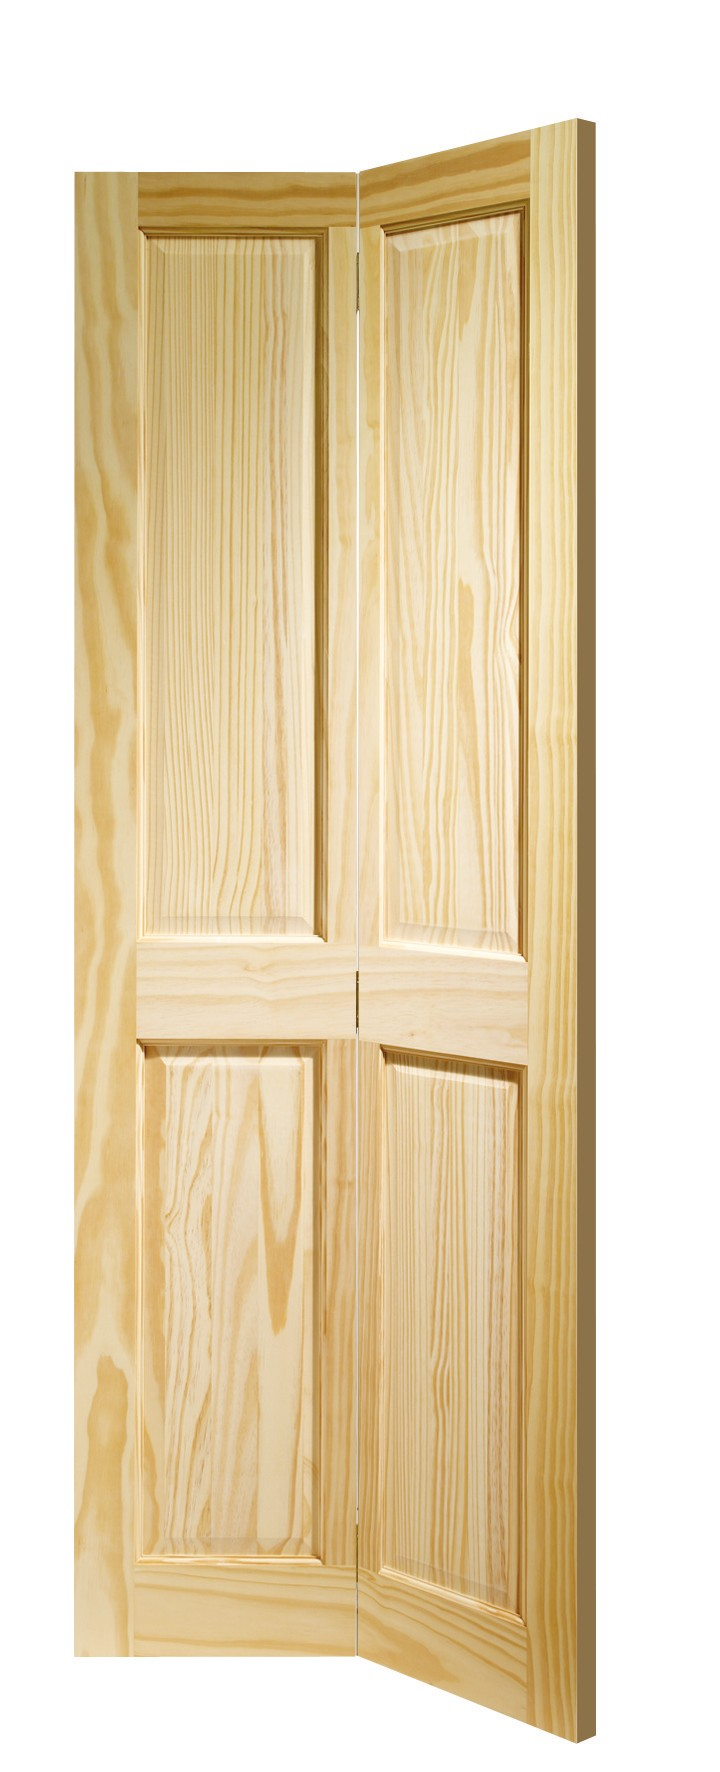 XL JOINERY DOORS -  CPBF4P30  Internal Clear Pine Victorian 4 Panel Bi-fold (30inch)  CPBF4P30